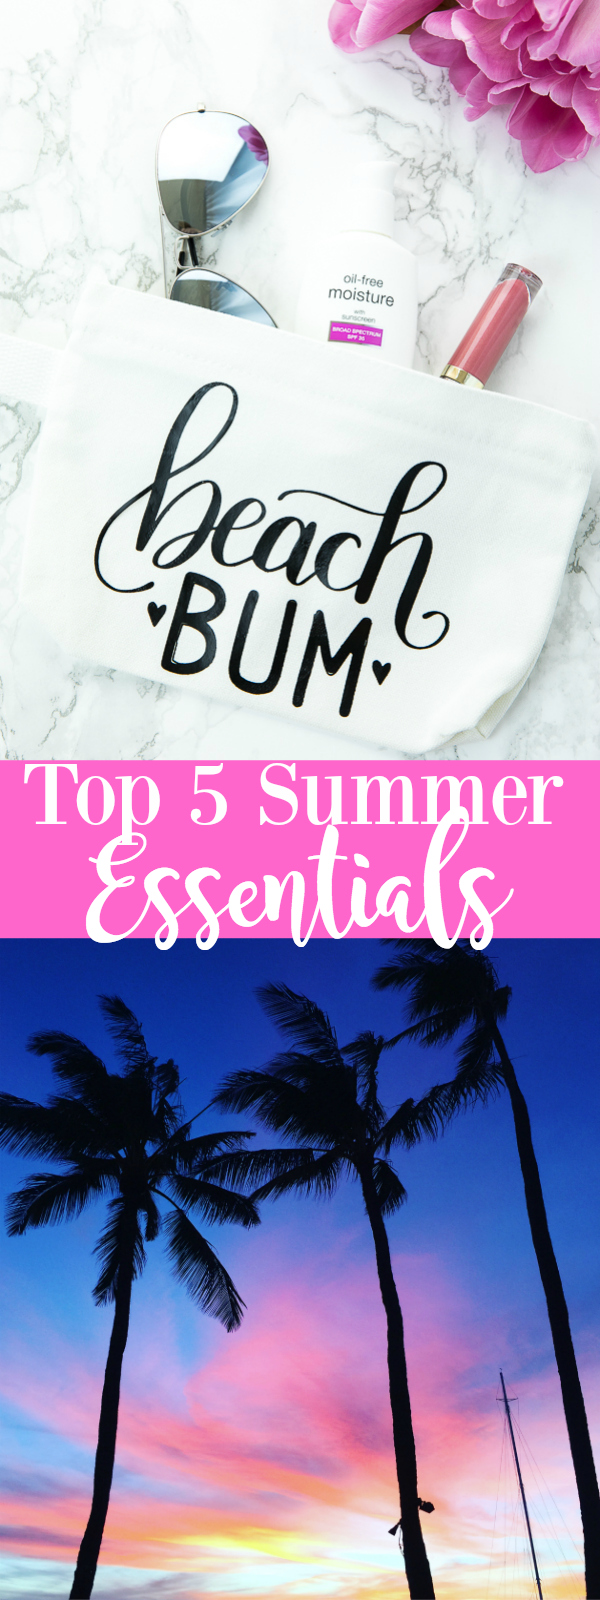 Top 5 Summer Essentials